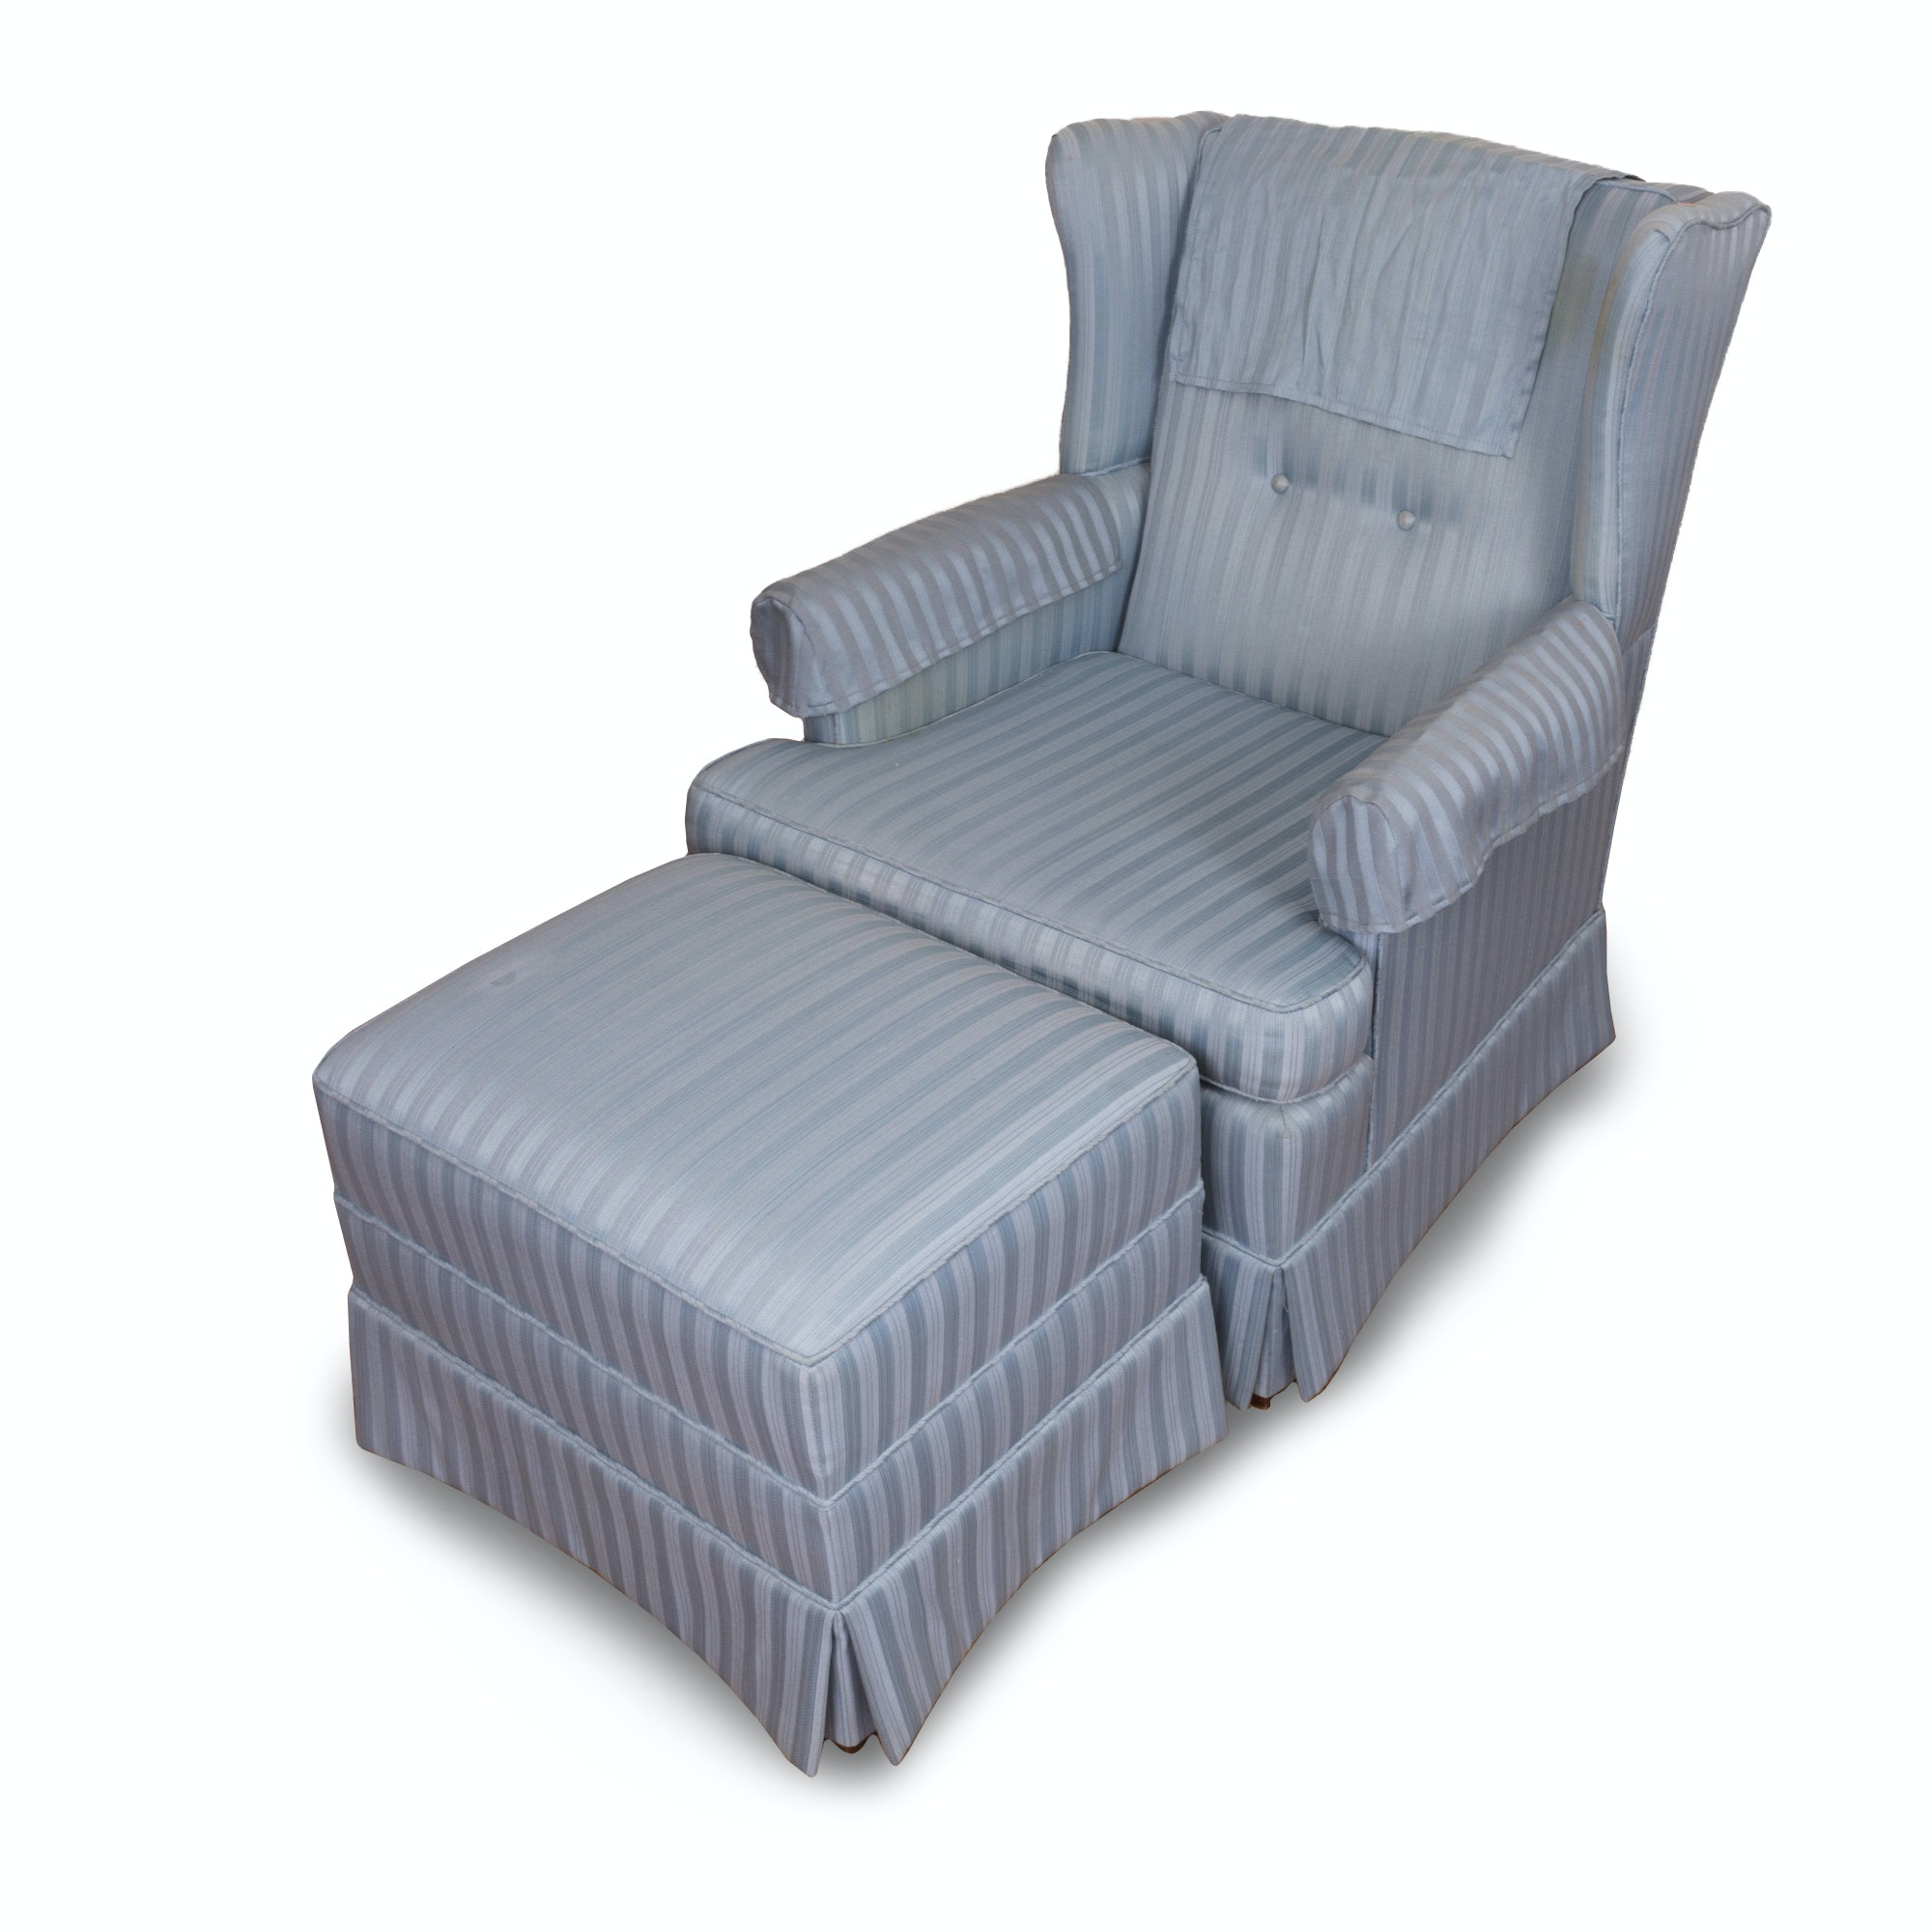 Upholstered Wingback Chair and Ottoman